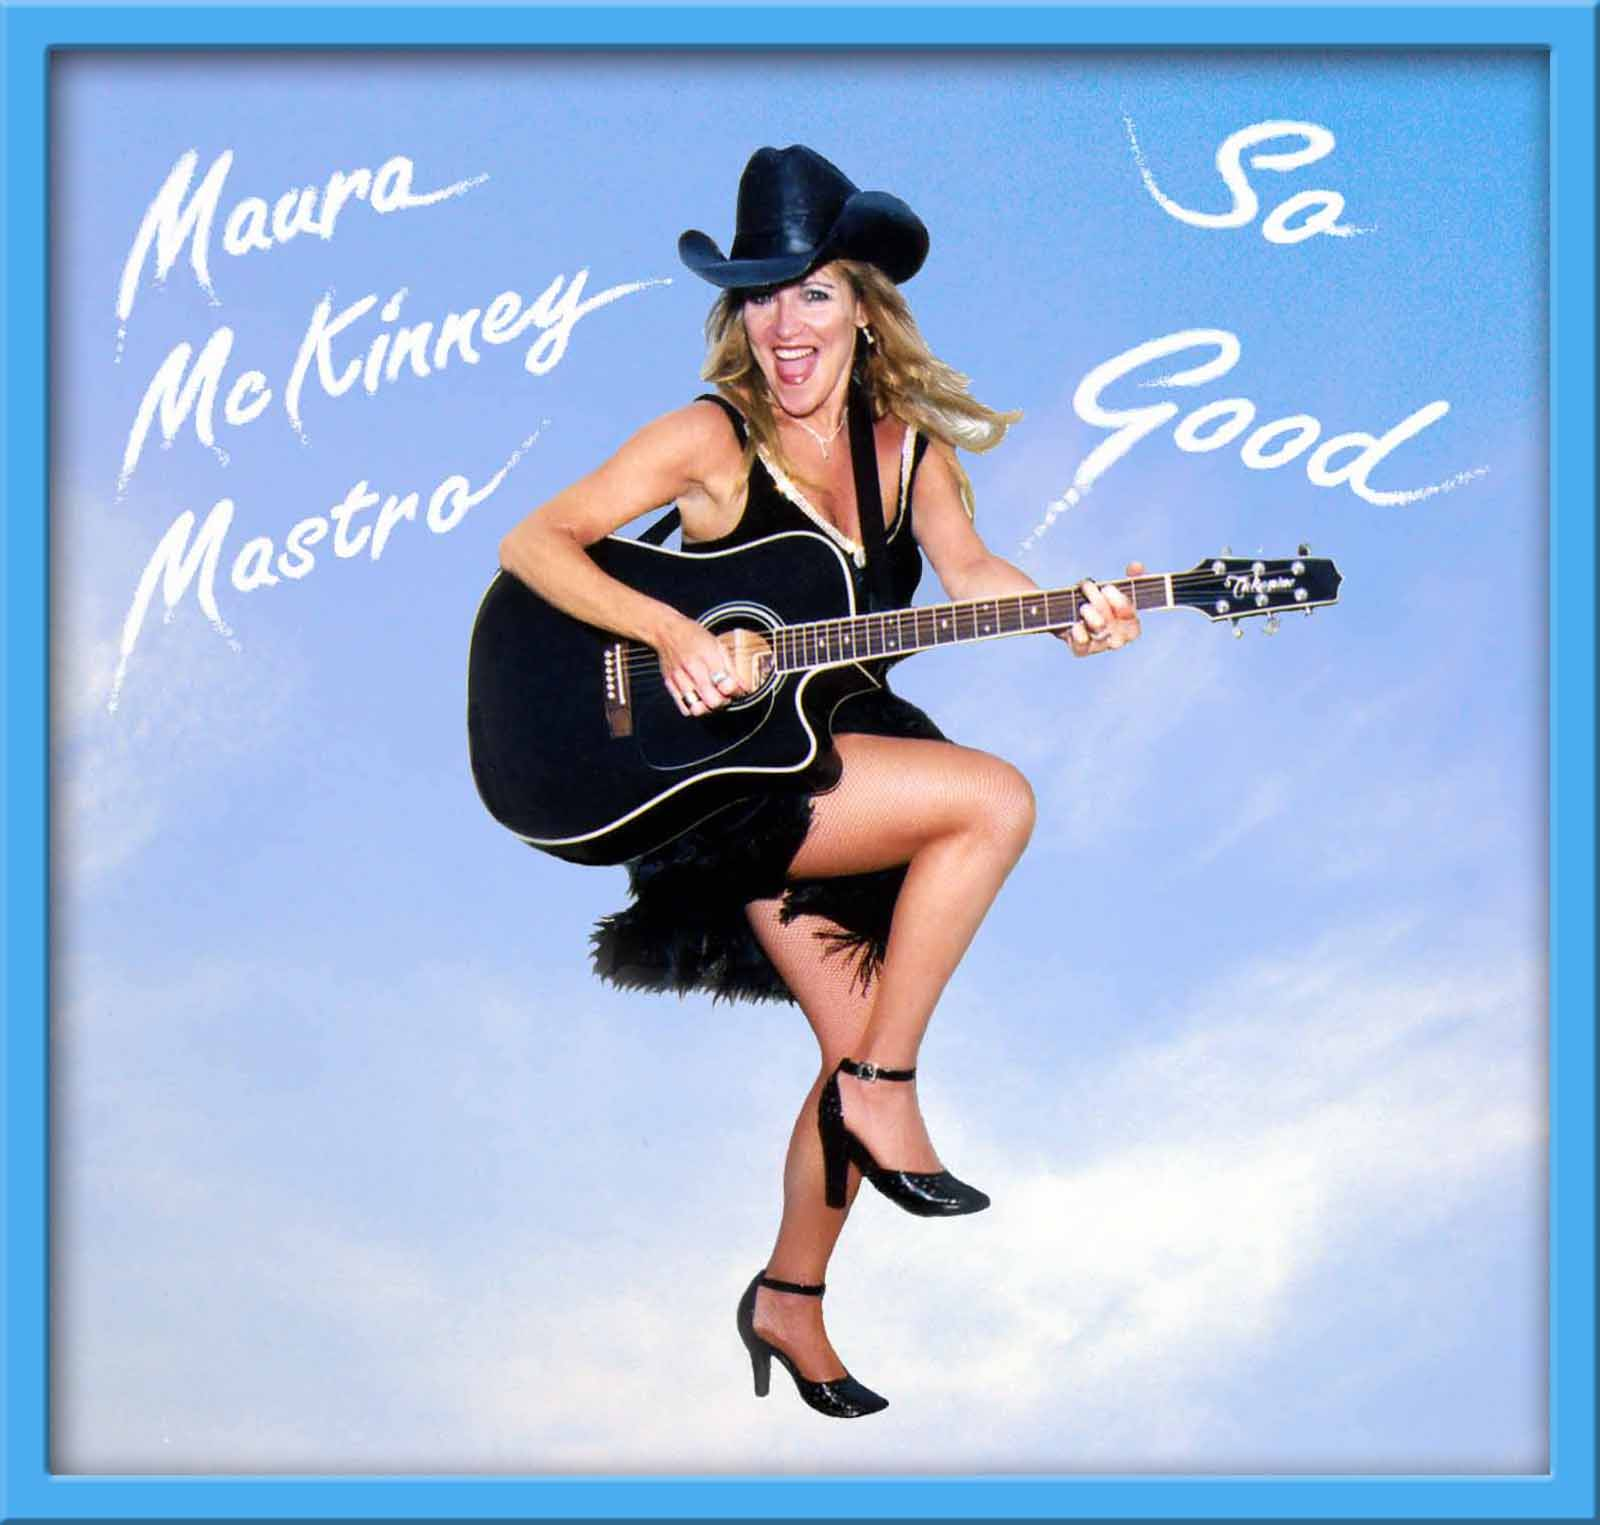 """So Good"" is a collection of Maura's original songs, bound in lush Nashville sound, set down with Maura's rich range and lilt, and punctuated with rock and Celtic vibes...exciting music."